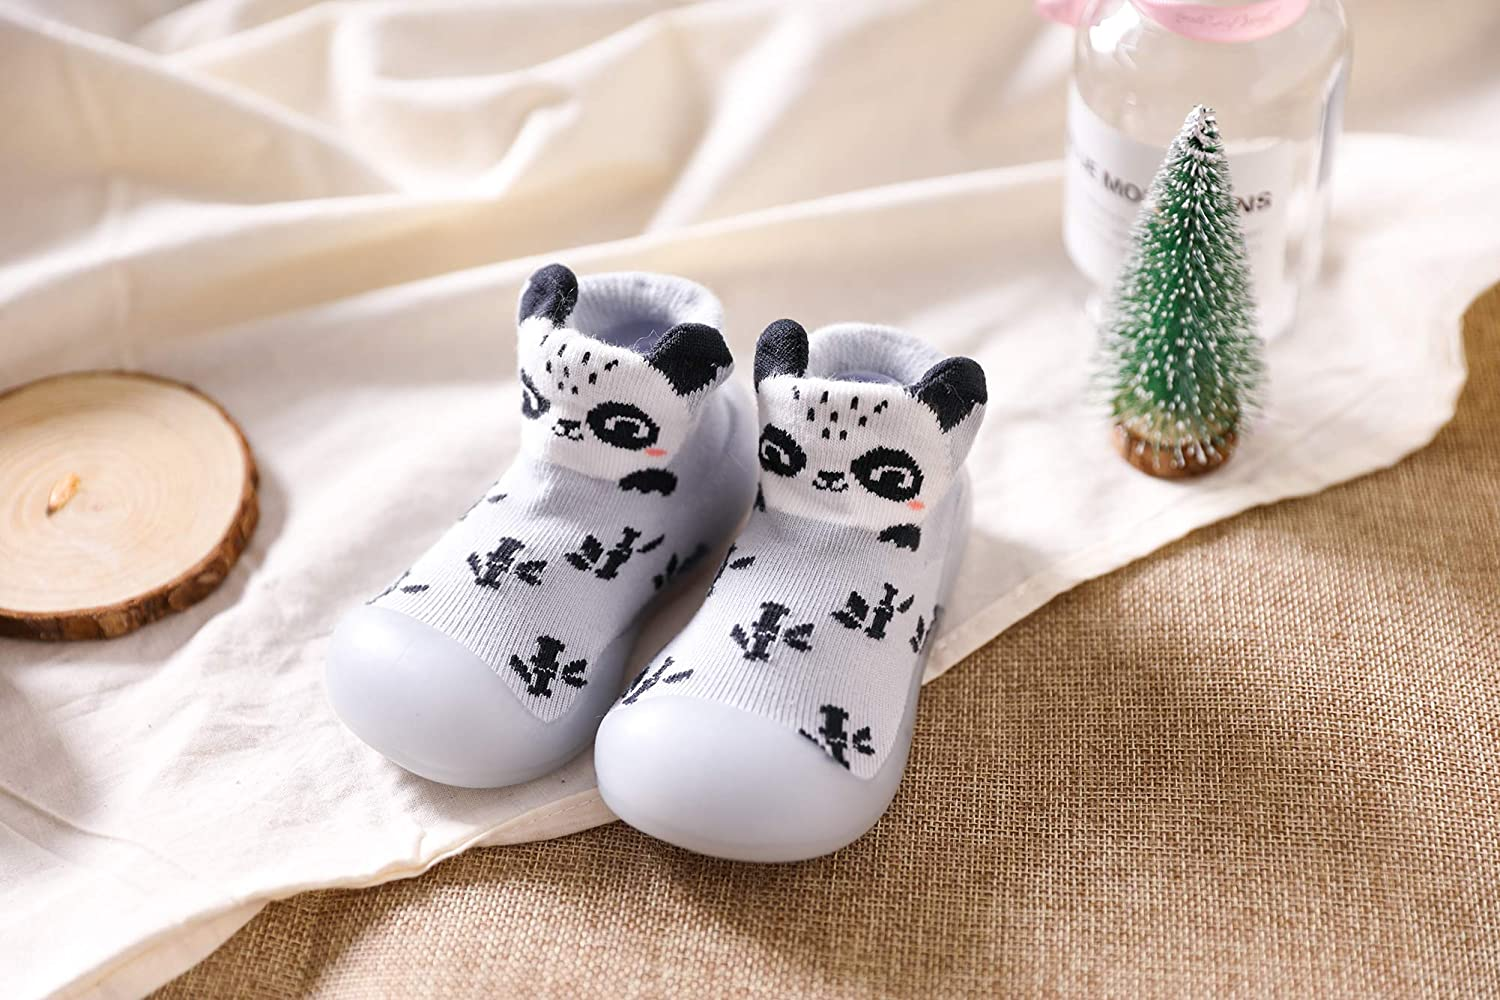 Baby Toddler Shoes Sock Non-Skid Breathable Soft TPE Sole Floor Slipper Indoor Outdoor Winter Warm Infant Shoes Socks